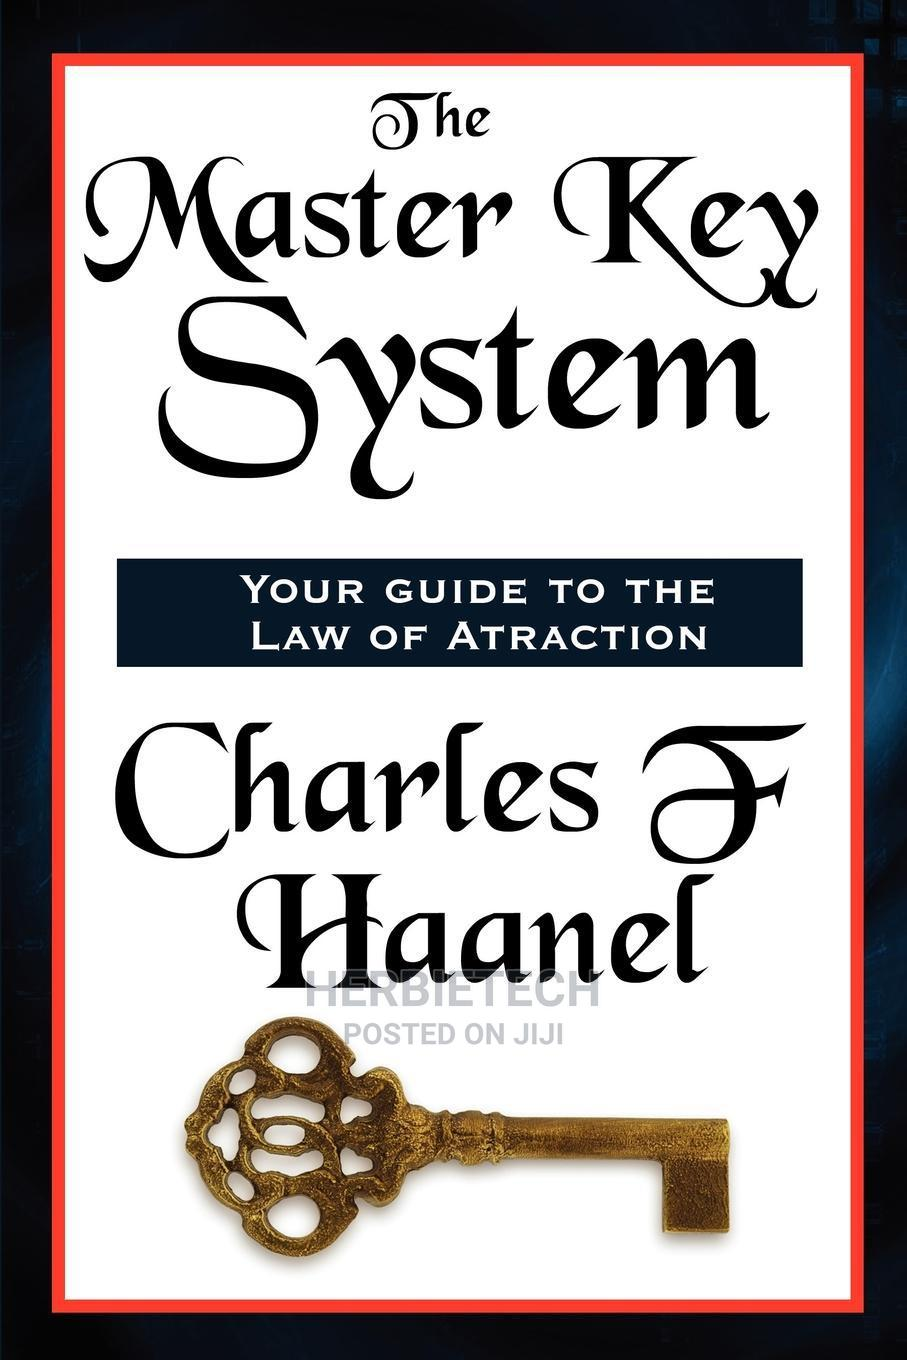 The Master Key System - Charles F. Haanel [AUDIOBOOK]